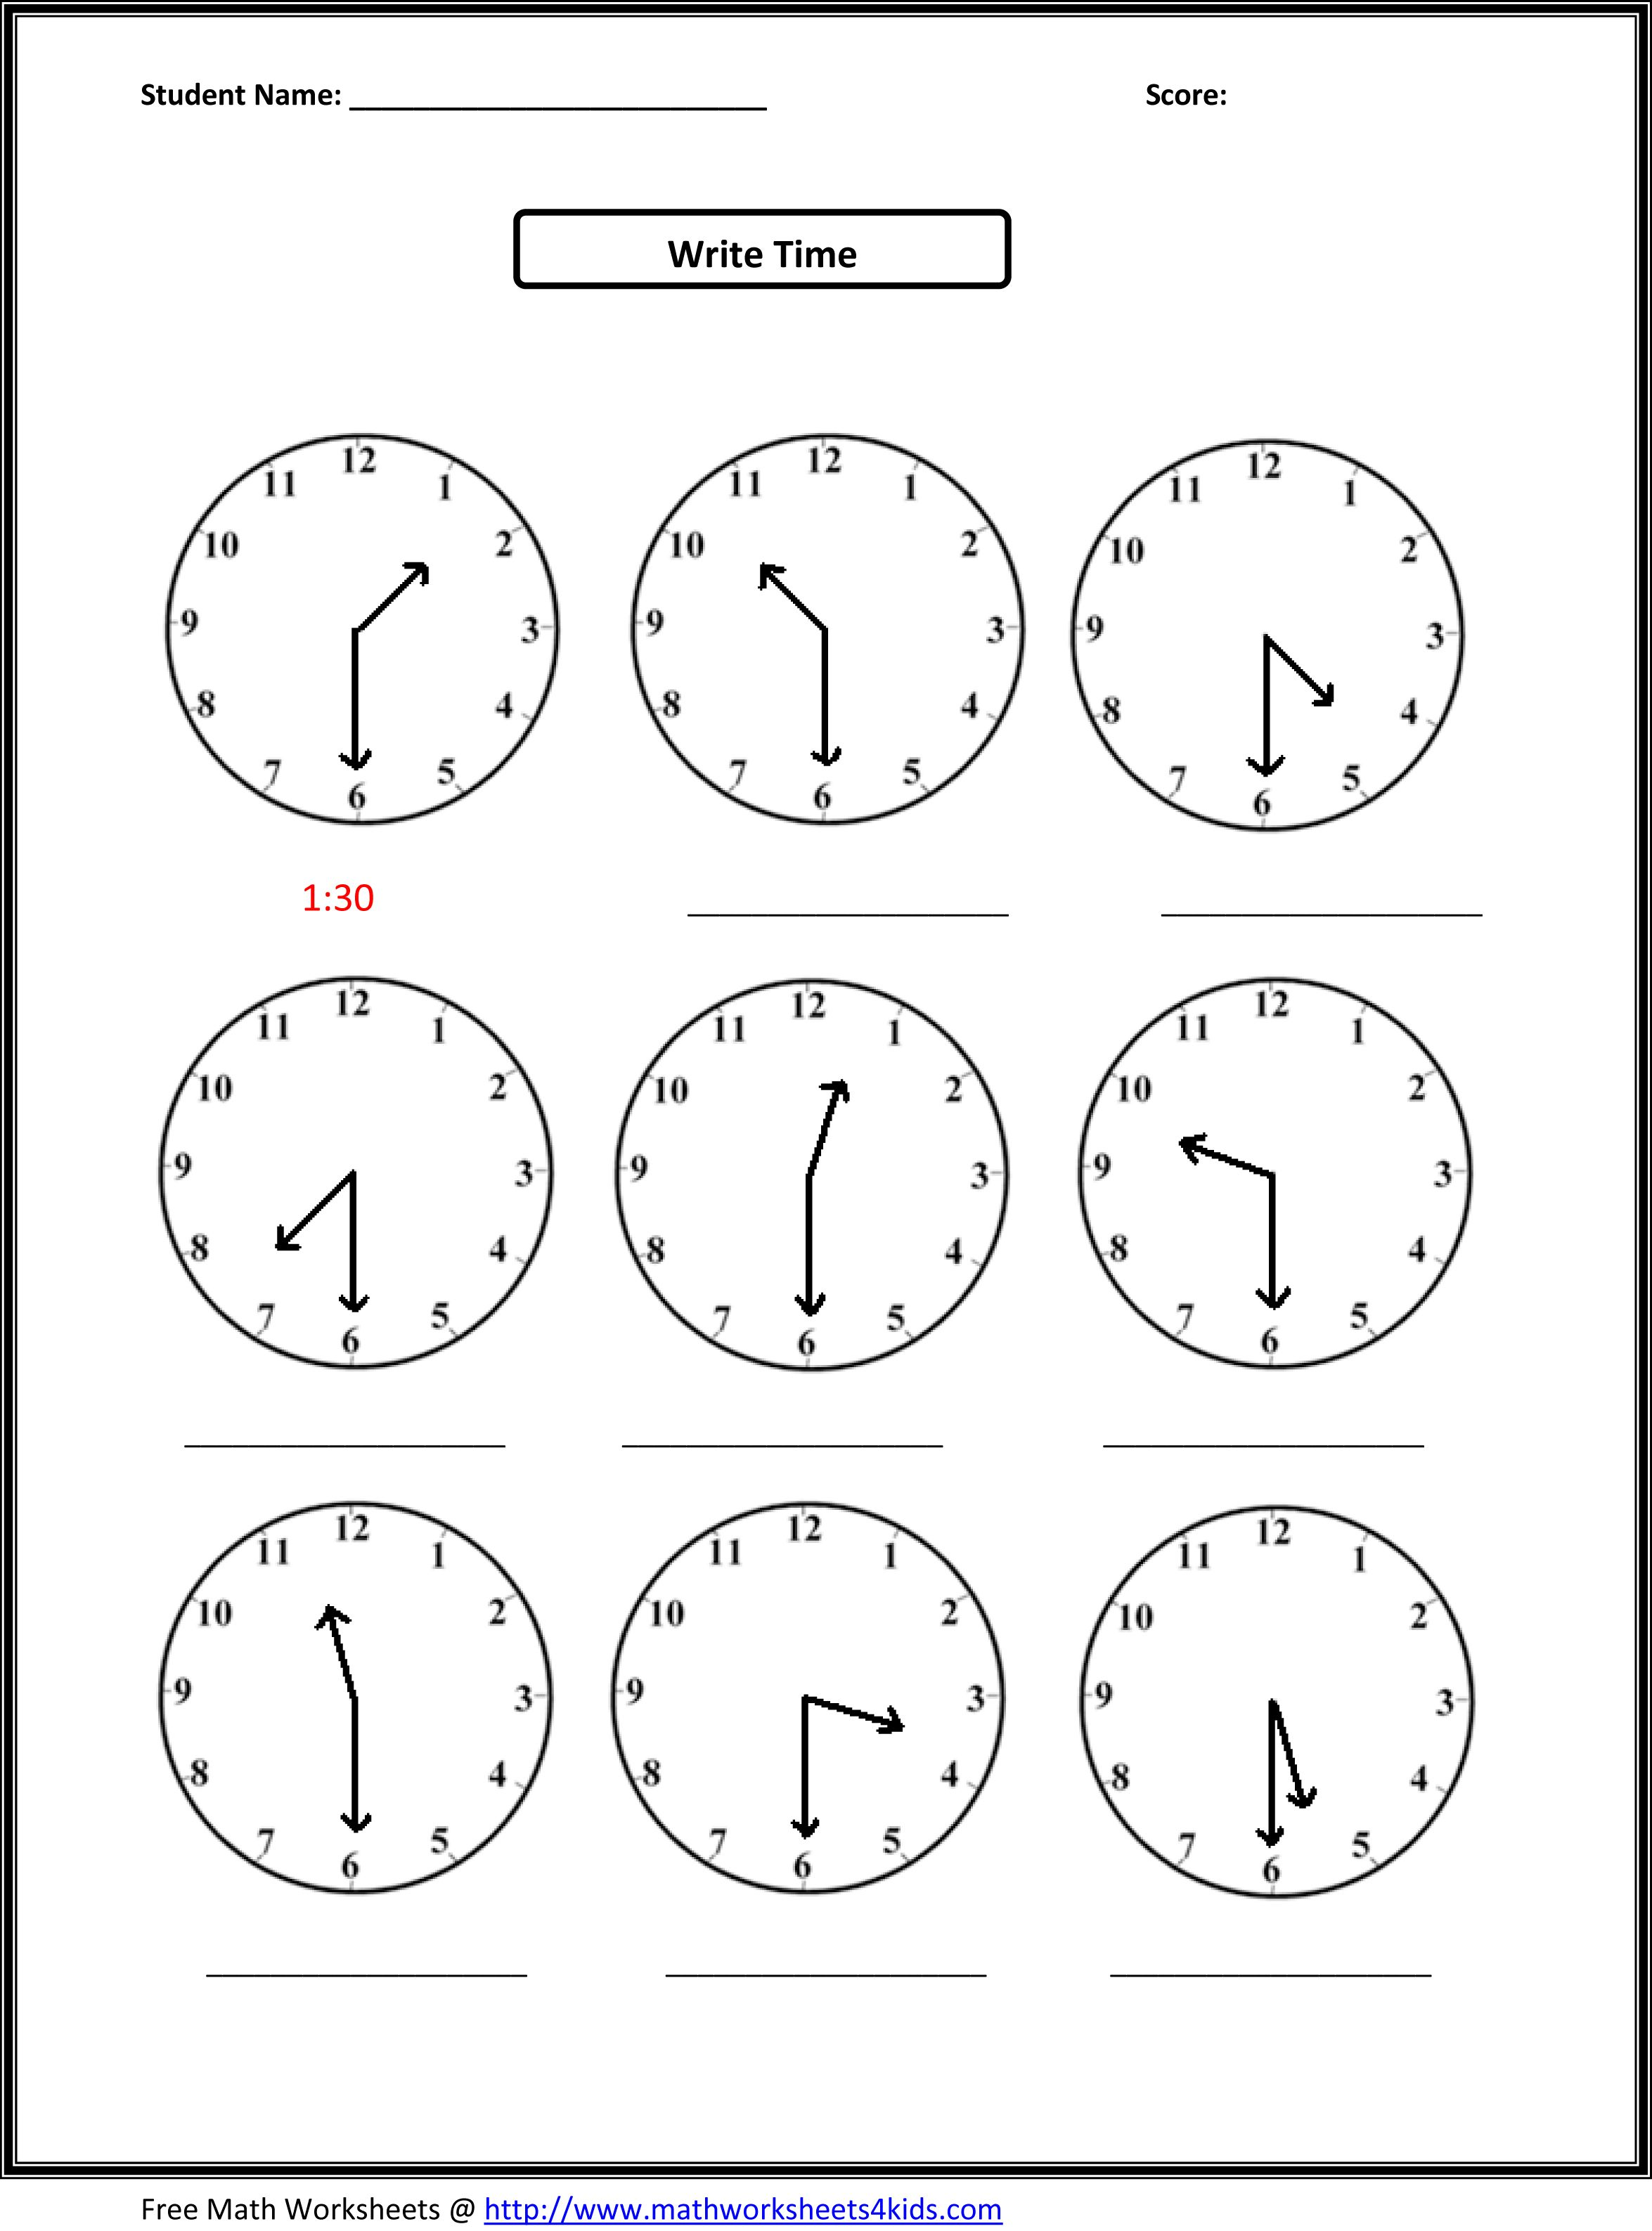 Weirdmailus  Scenic Worksheet On Time For Grade   Reocurent With Handsome Free Printable Telling Time Worksheets Nd Grade  Reocurent With Beauteous Movement Of The Body Worksheet Also Tracing Worksheets For Preschool Alphabet In Addition What I Did This Summer Worksheet And Discount Worksheets As Well As North America Geography Worksheets Additionally Inequalities With Variables On Both Sides Worksheet From Reocurentcom With Weirdmailus  Handsome Worksheet On Time For Grade   Reocurent With Beauteous Free Printable Telling Time Worksheets Nd Grade  Reocurent And Scenic Movement Of The Body Worksheet Also Tracing Worksheets For Preschool Alphabet In Addition What I Did This Summer Worksheet From Reocurentcom